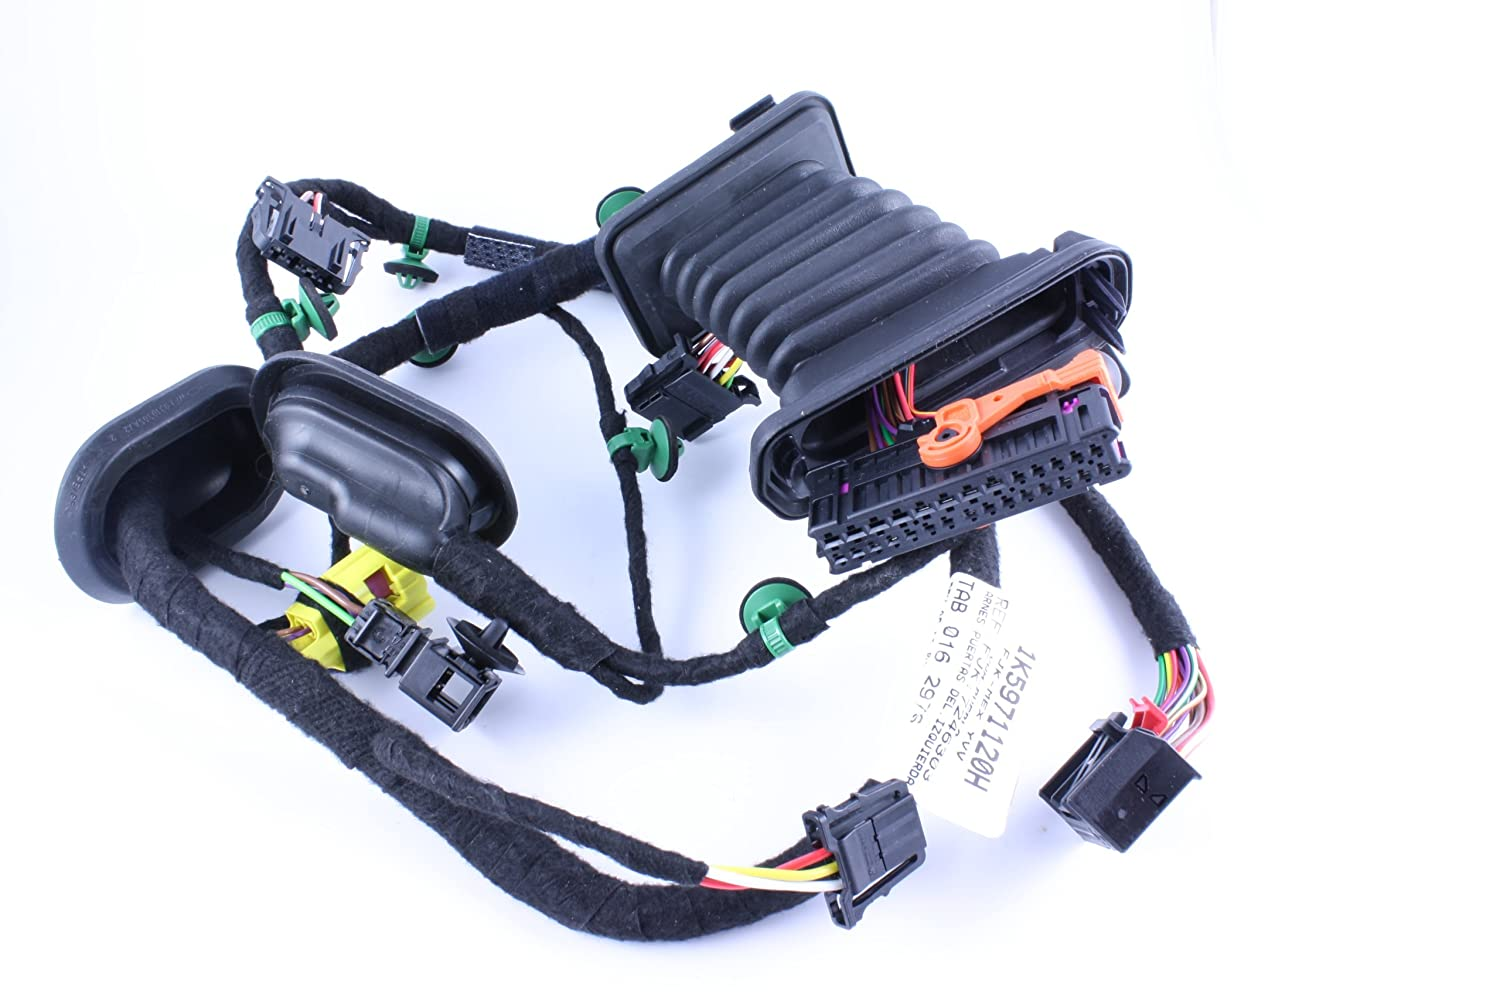 81nbhs5WbzL._SL1500_ amazon com genuine volkswagen drivers side door harness 1k5 971 Chevy Wiring Harness for 1999 Sierra Door at webbmarketing.co